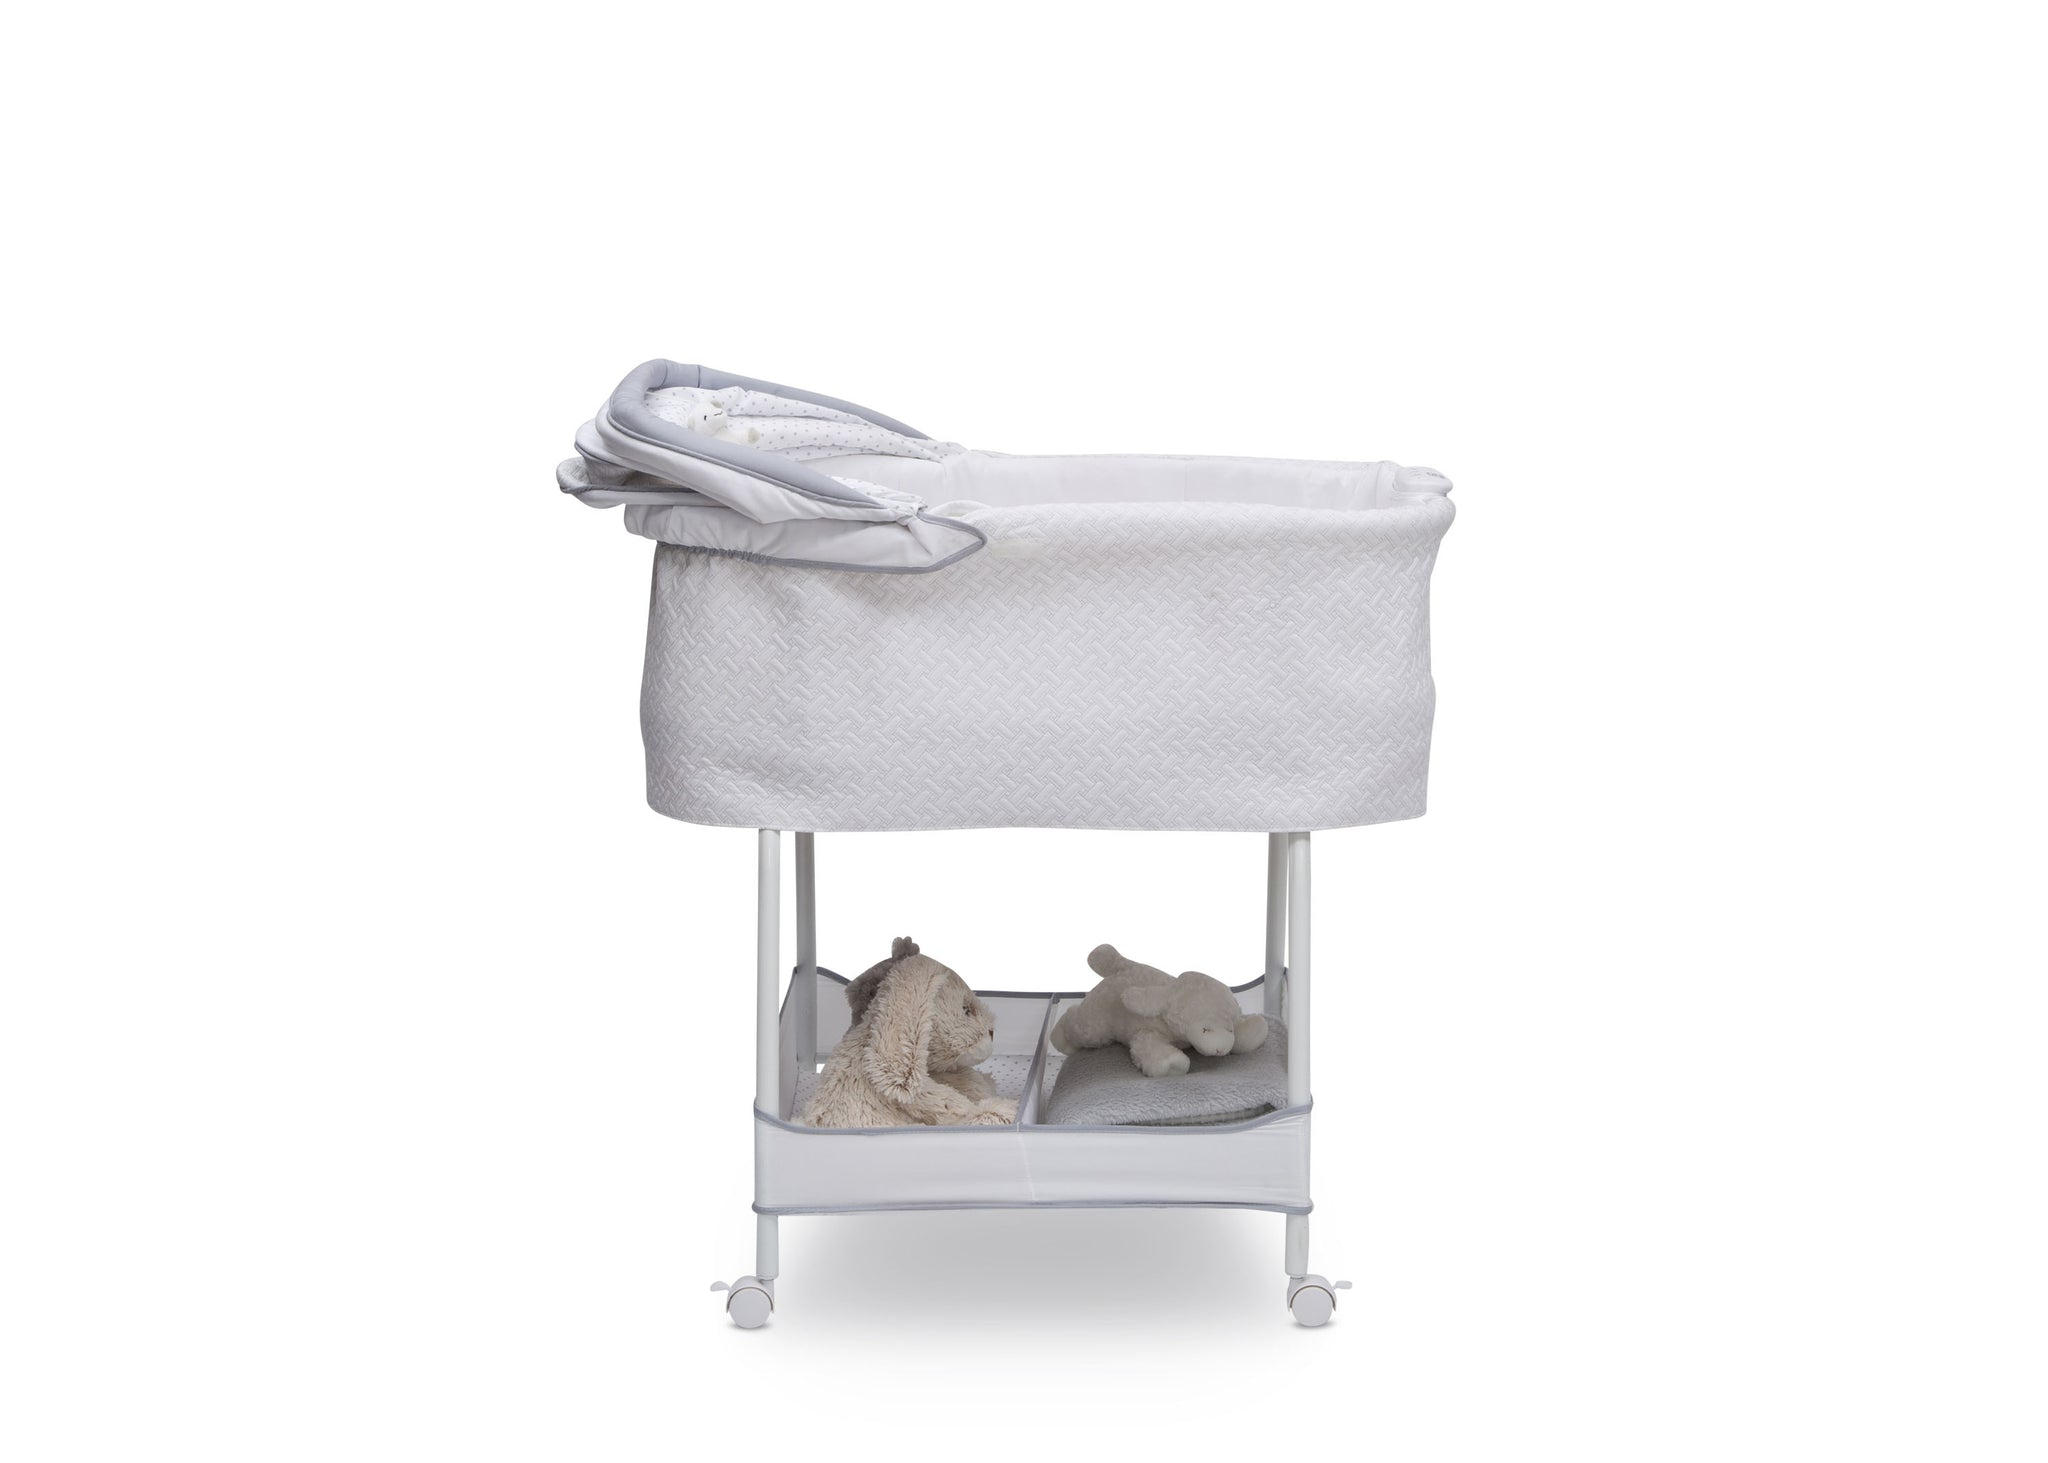 Simmons Kids Basketweave (2113) Silent Auto Gliding Elite Bassinet, Side Silo View with Canopy Down